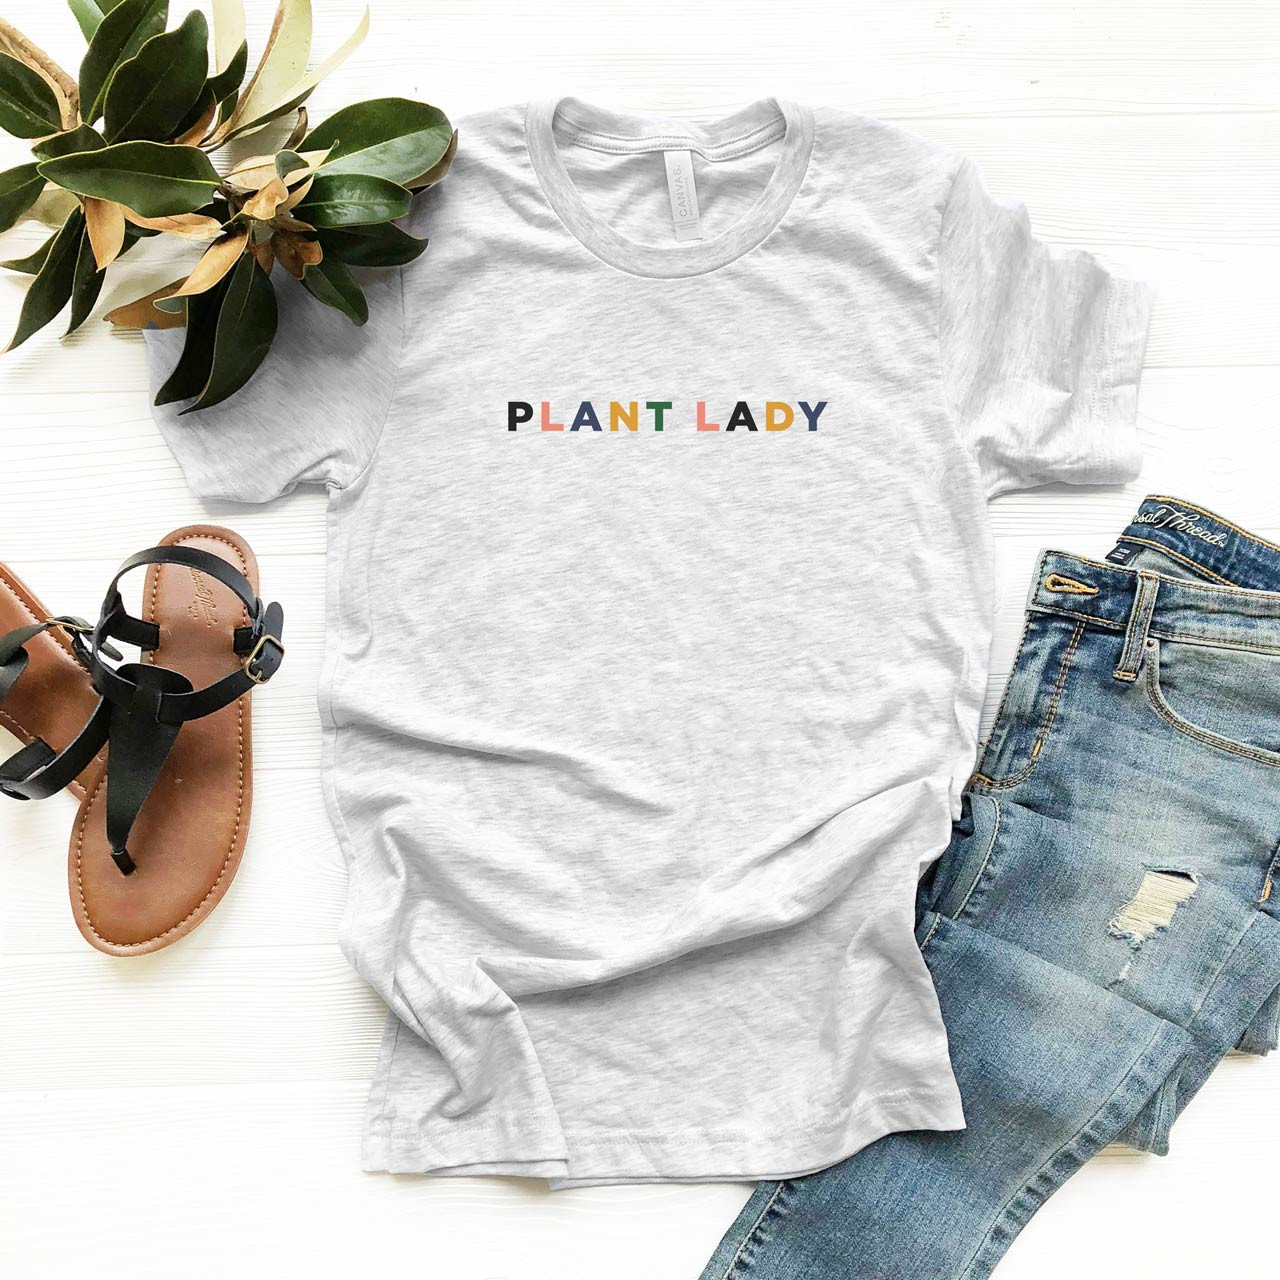 PLANT LADY Vintage T-Shirt (Color on Light Gray Fleck) from The Printed Home